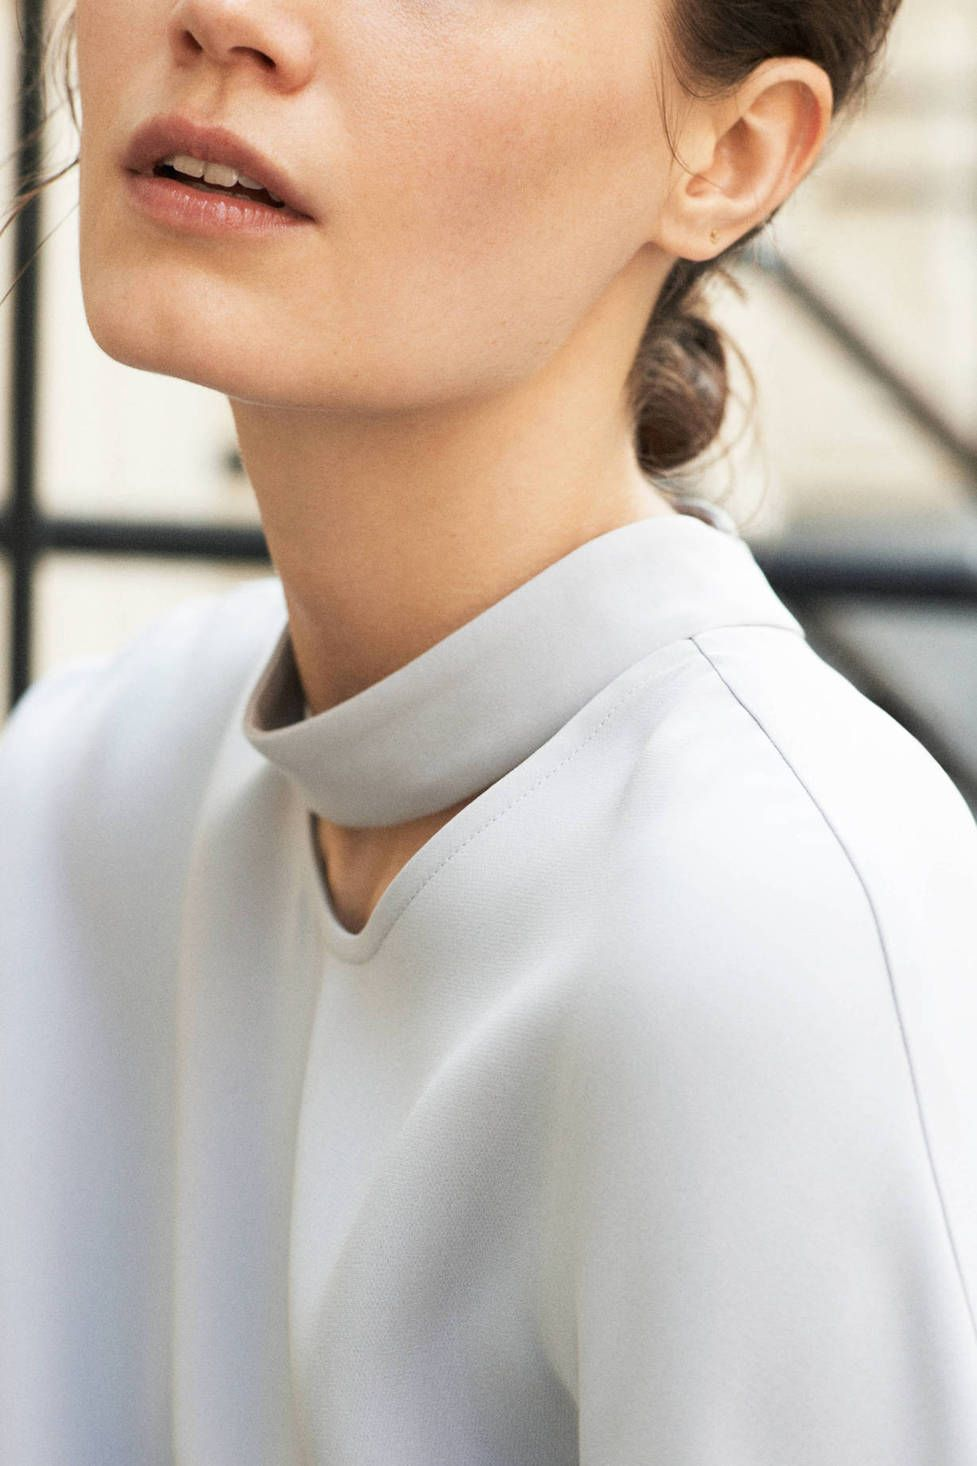 Protagonist's pale grey Shirt 04 combines a sleeveless silhouette with a deconstructed turtleneck neckline.